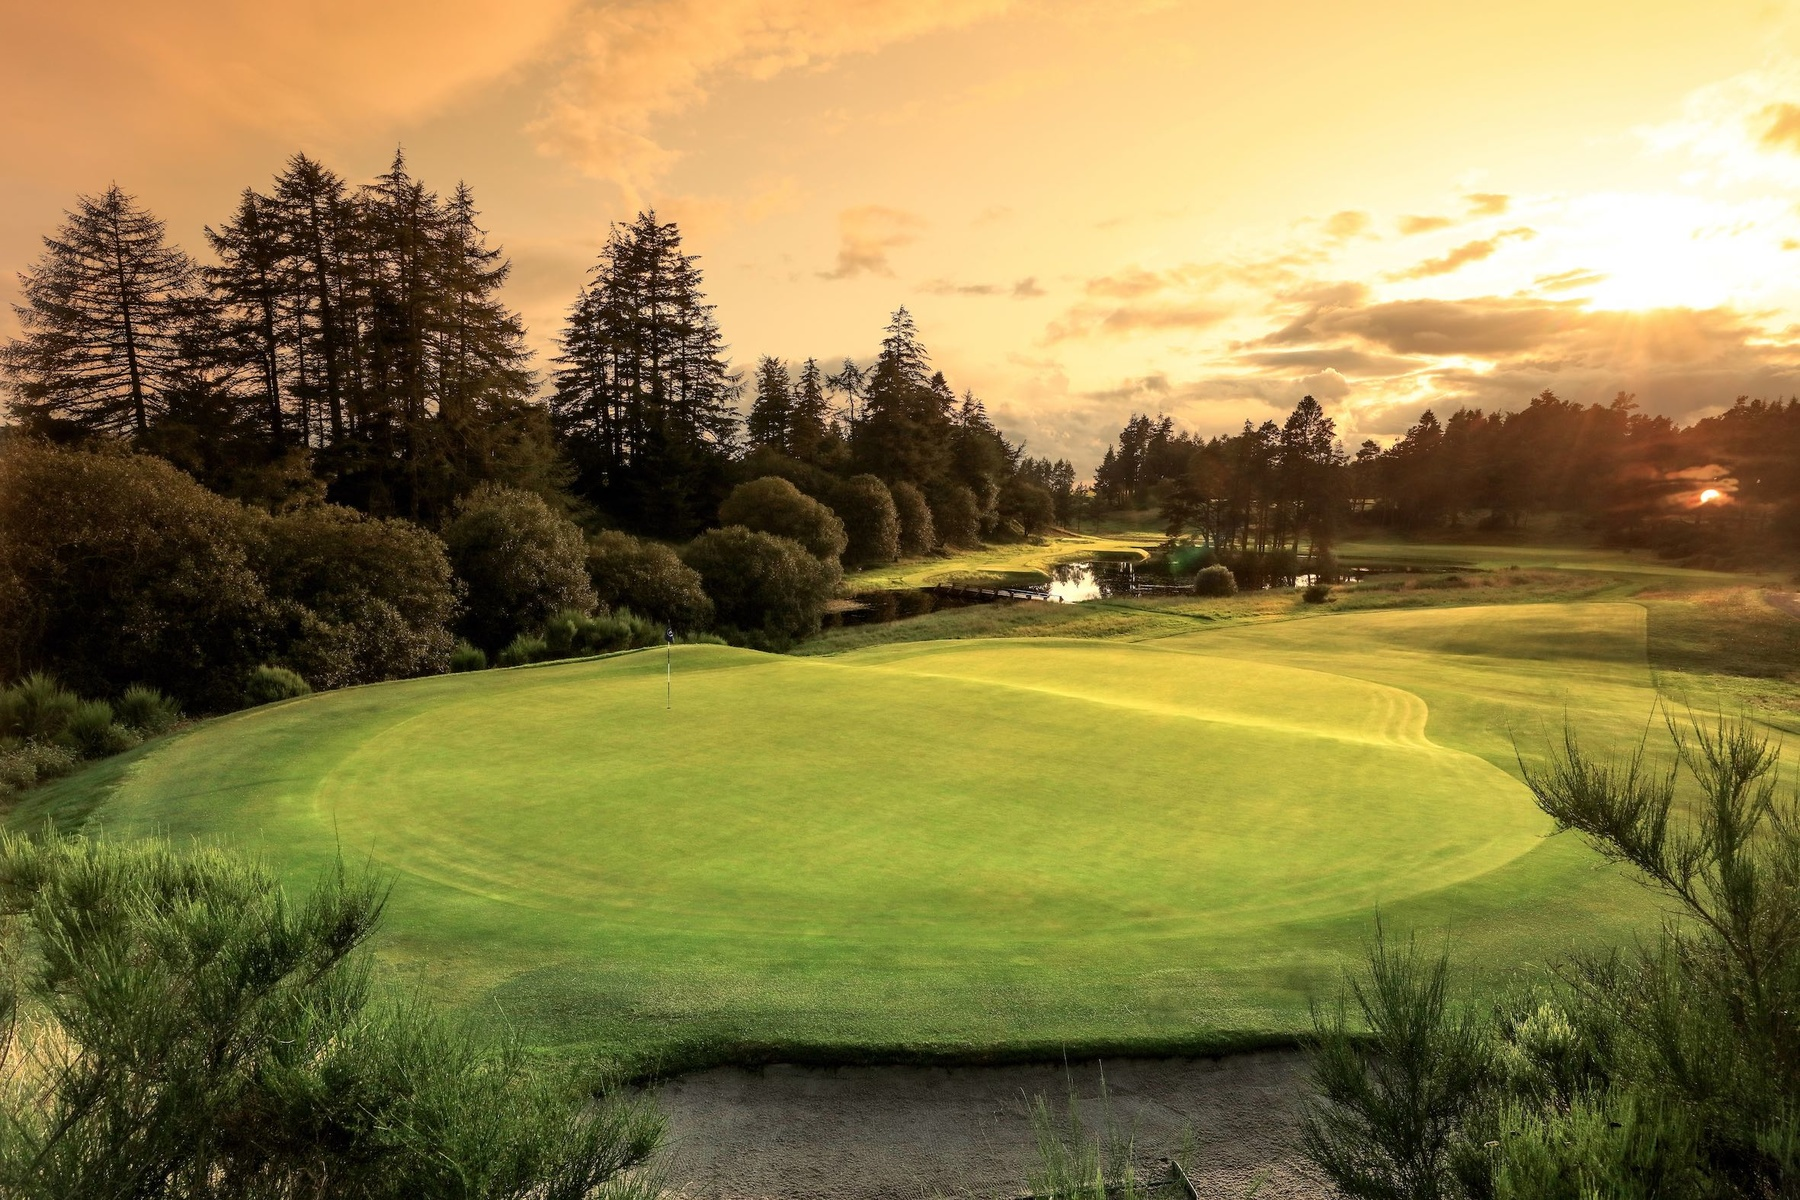 General views of the Gleneagles Golf Courses